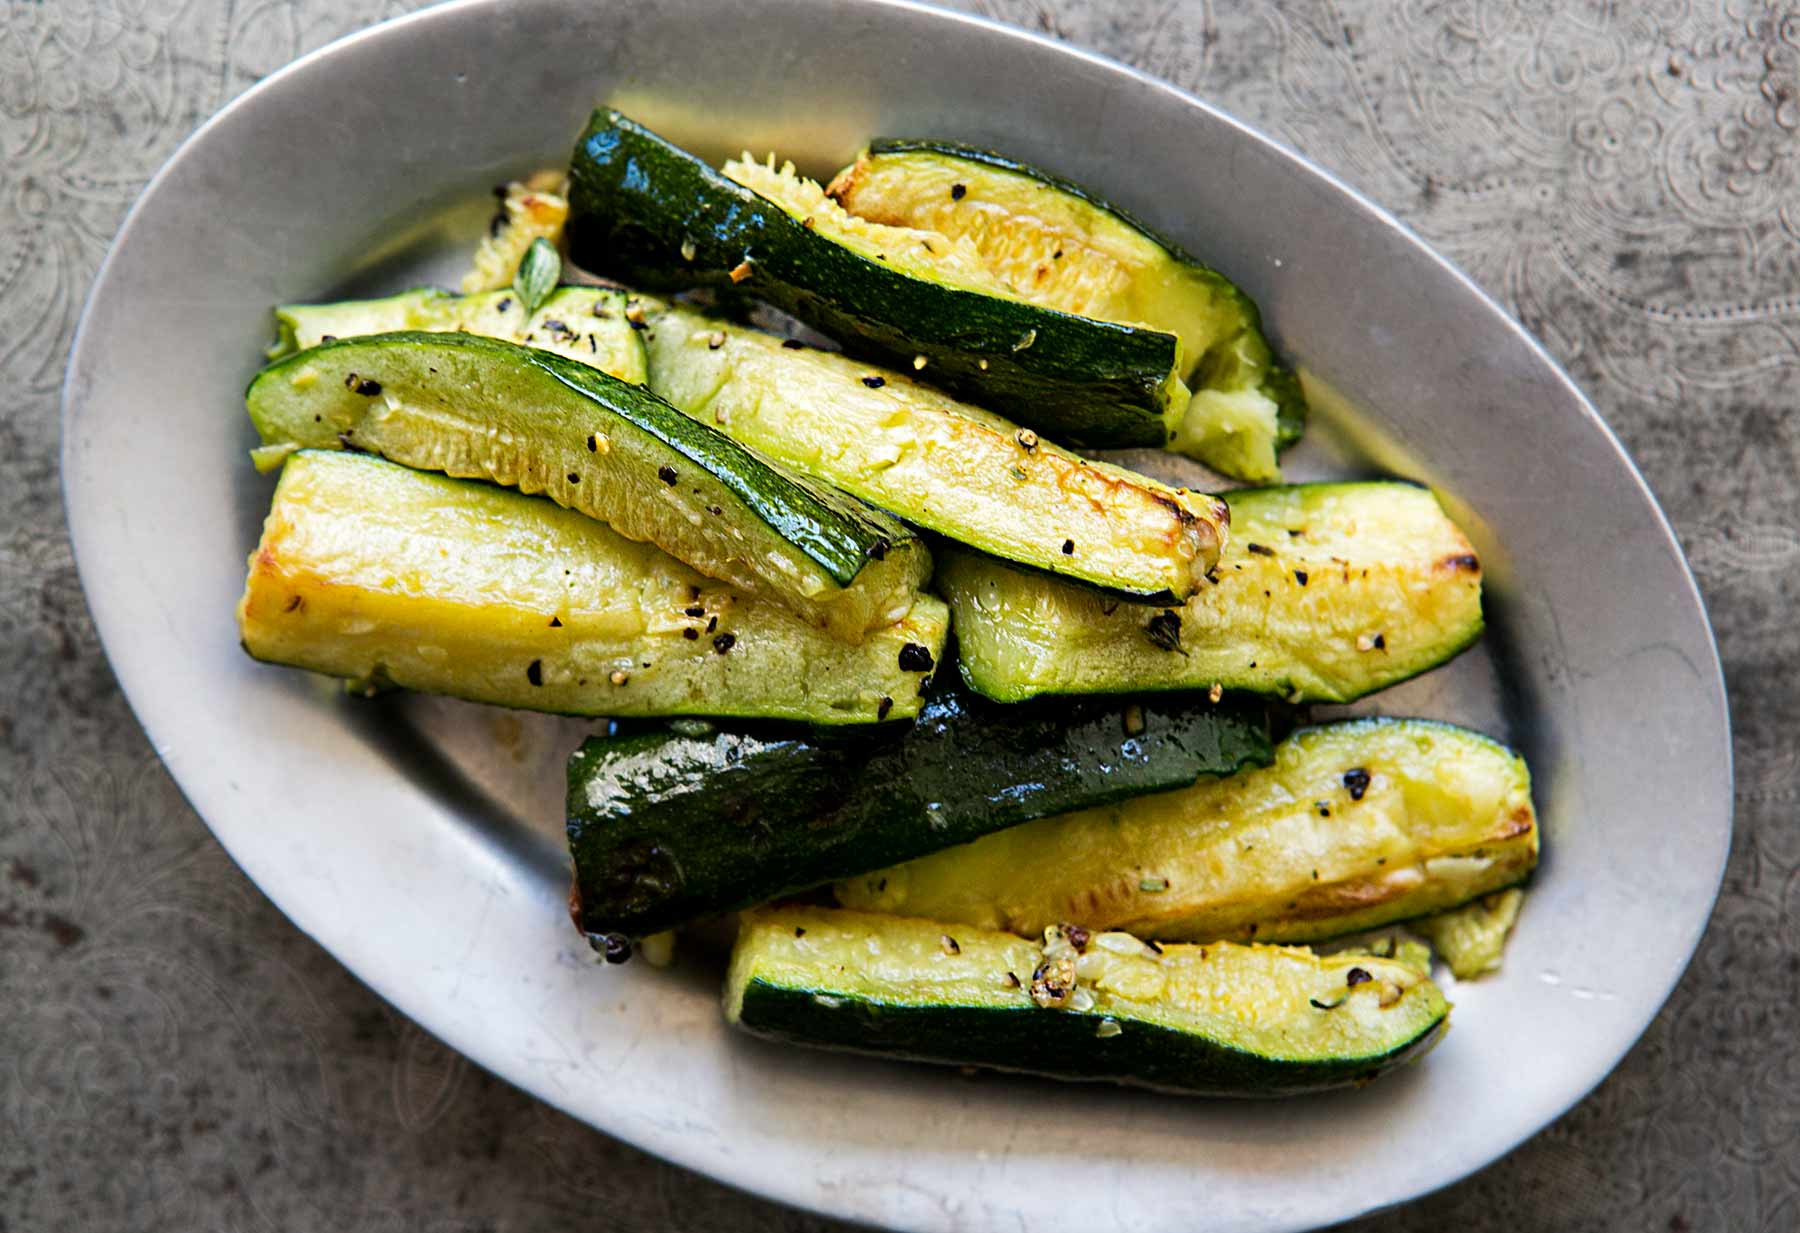 How Long To Grill Zucchini Roasted Zucchini with Garlic Recipe